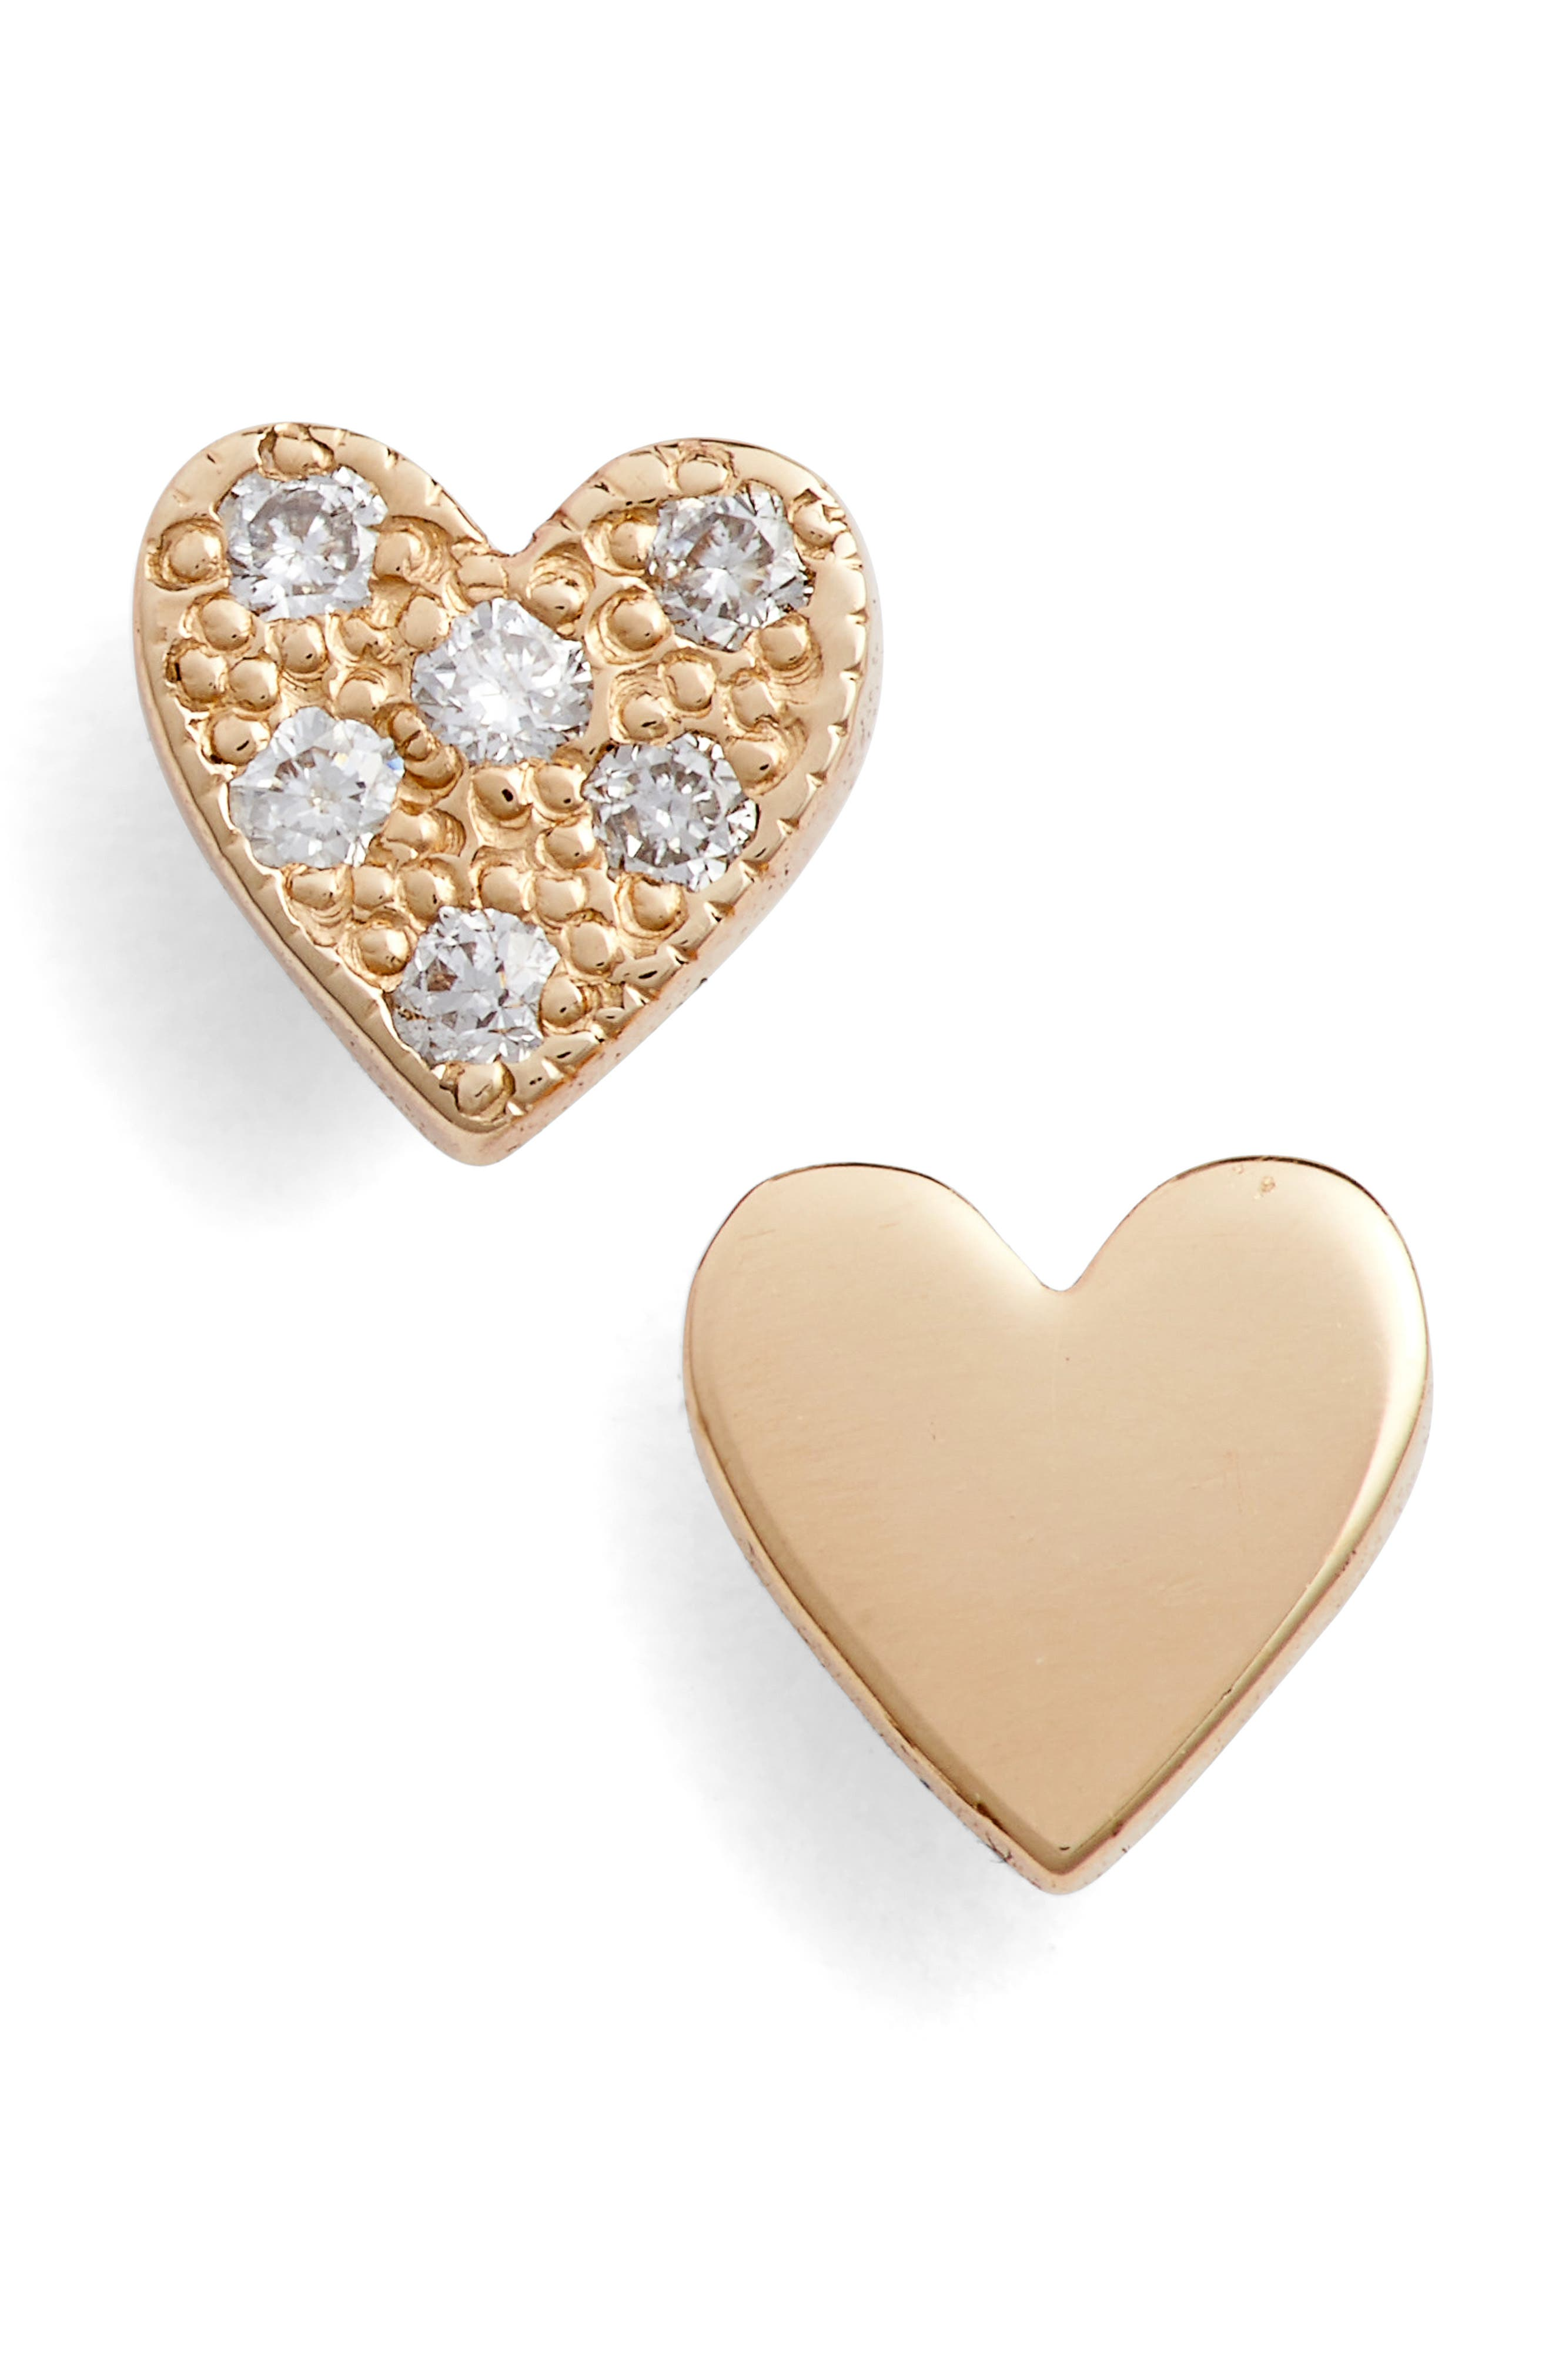 Zoë Chicco Pavé Diamond Heart Stud Earrings